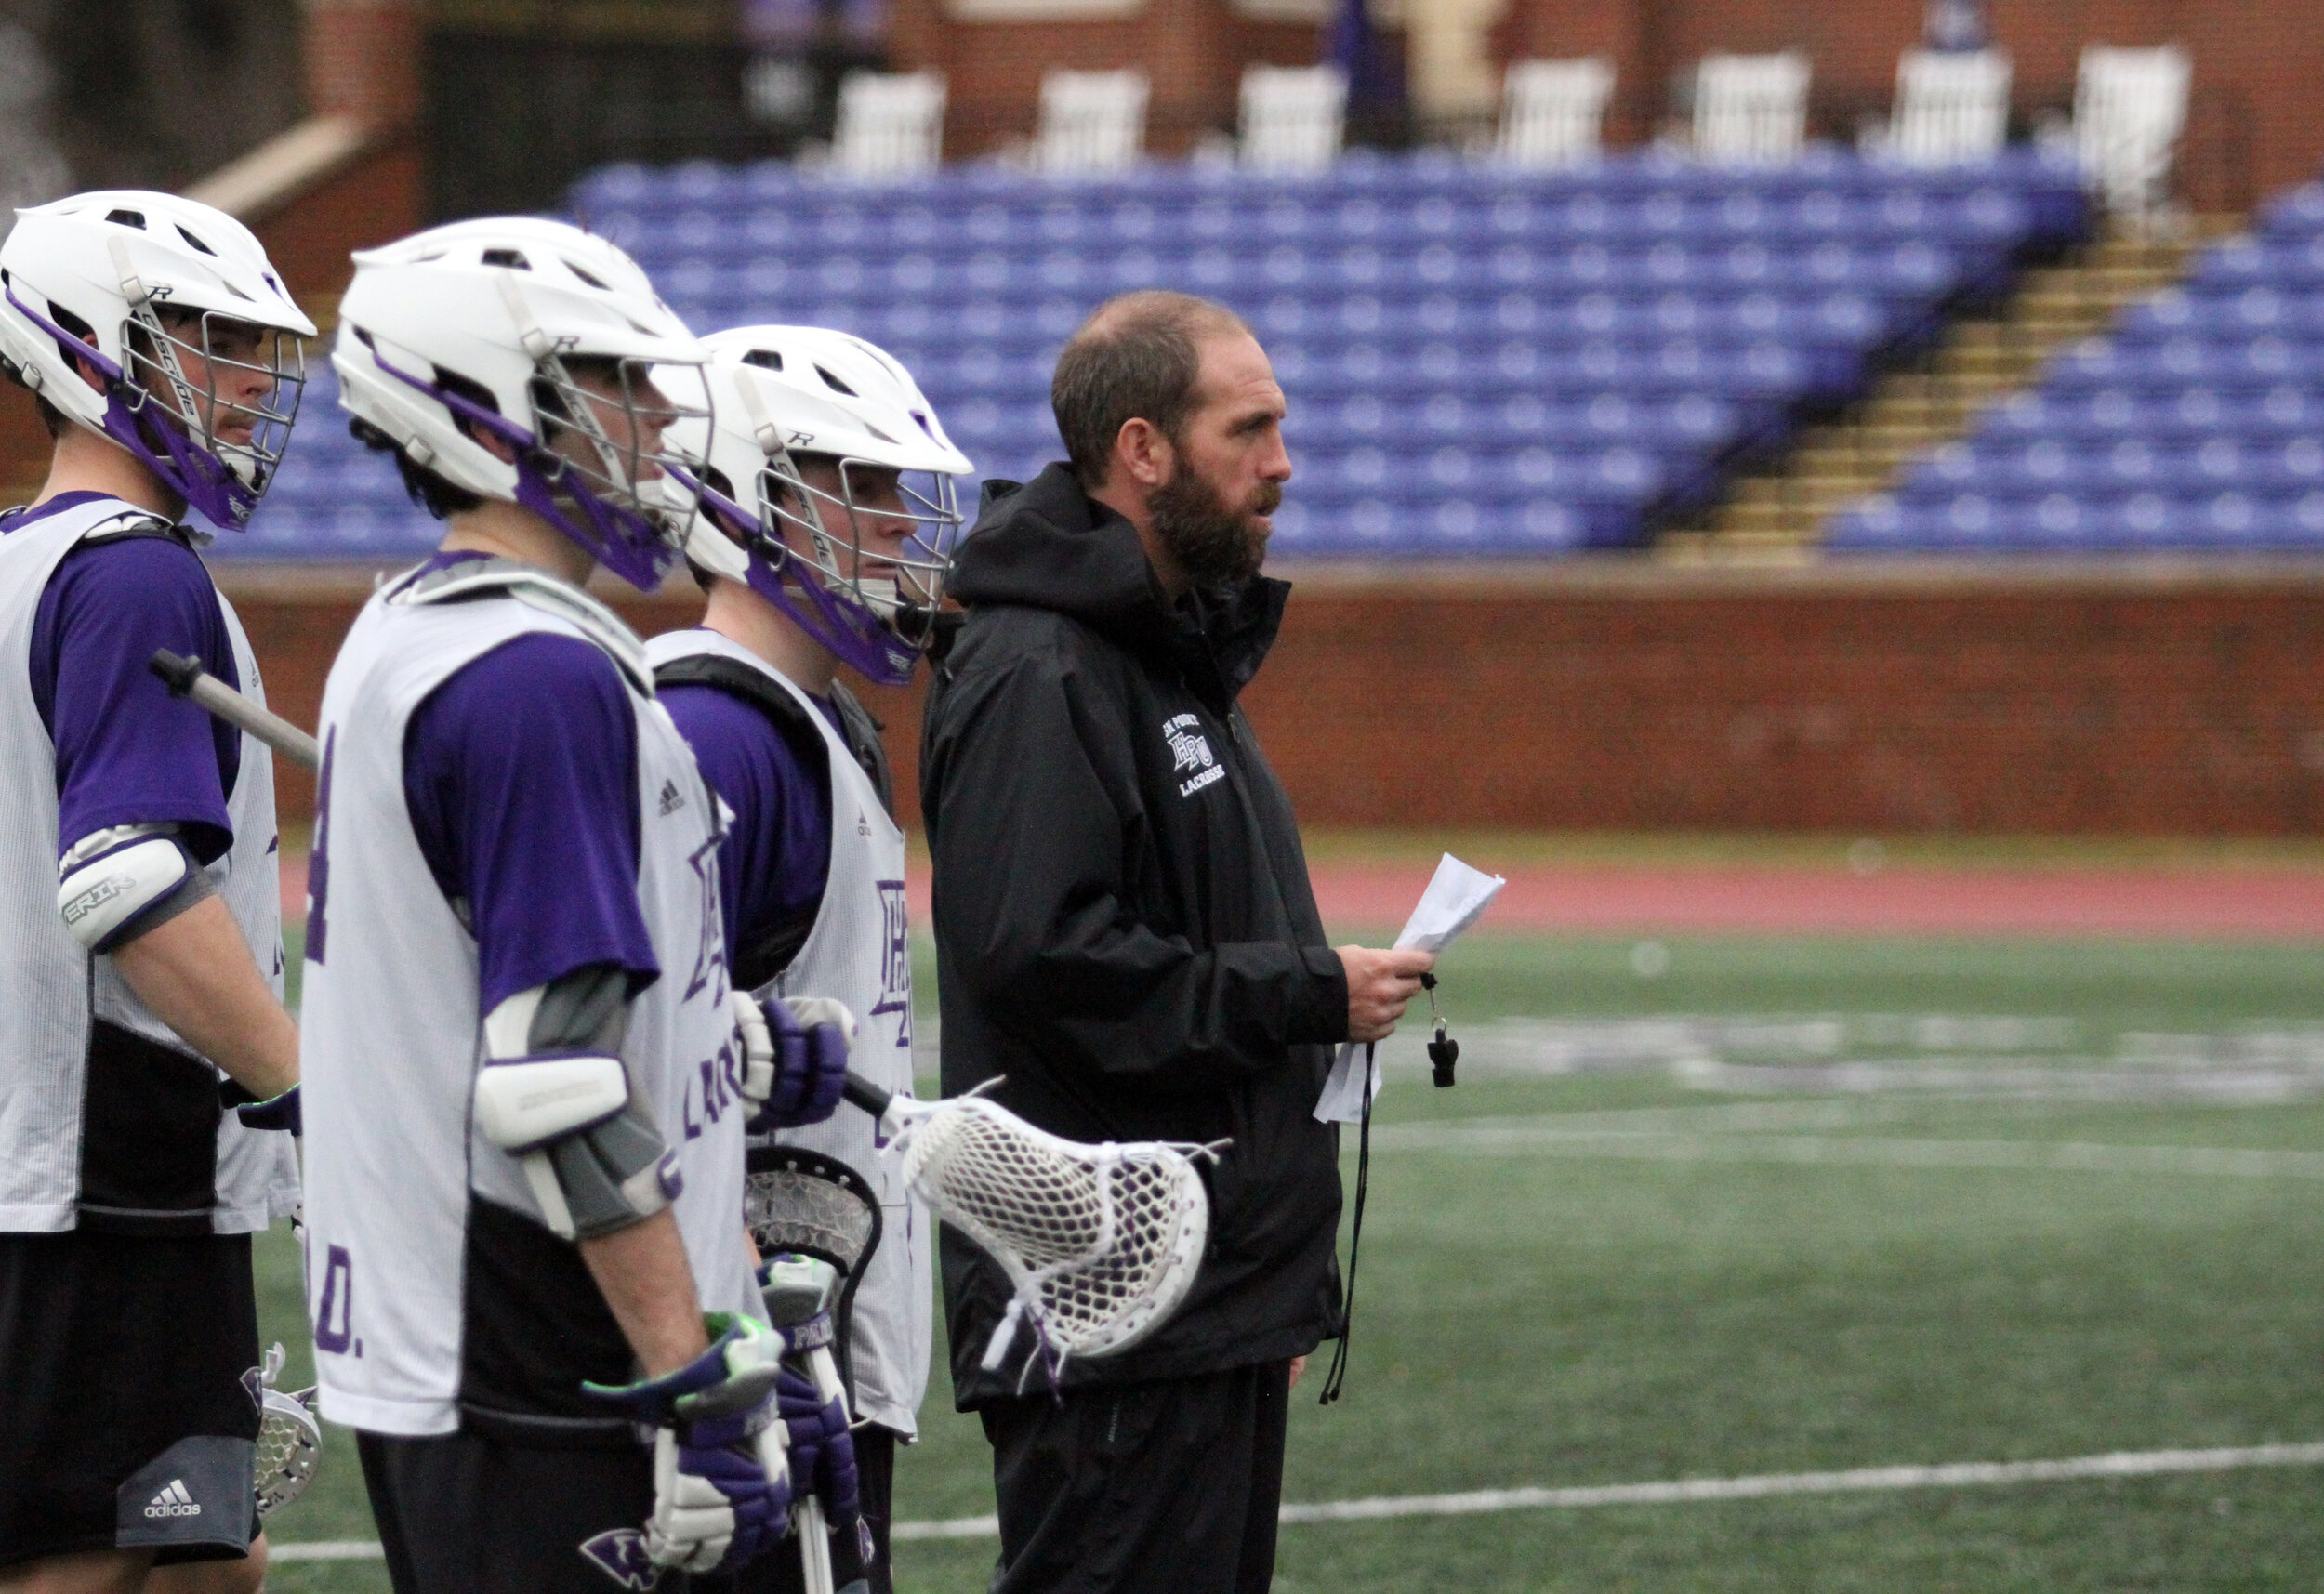 - Coach Tracy is a former Division I Lacrosse Coach with 16 years collegiate coaching experience. Coach Tracy started his career at Goucher College as an undergraduate coach in 2005 and then as a Graduate coach in 2006. As Goucher he was the offensive coordinator, recruiting coordinator and strength and condition program coordinator. In the Fall of 2006 he was offered the assistant offensive coordinator and goalie coach position at Dartmouth College where he was also responsible for all recruiting camps, youth lacrosse clinics and scouting reports. In 2007 Coach Tracy was asked to join the coaching staff at UMBC as the Defensive Coordinator and Head Goalie Coach. After 5 seasons with the Retrievers, 2 conference championships, 2 trips to the NCAA tournament and rankings in the Top 10 of Divisions I Lacrosse. In 2011 he accepted an invitation to help build a new Division I program at High Point University as the Associate Head Coach and Offensive Coordinator. While at HPU he won 3 conference championships, made competitive appearances at the NCAA tournament, coached 49 All Conference players, 16 All Americans, 14 future Professional players and recruited 62 high school All American Student Athletes.